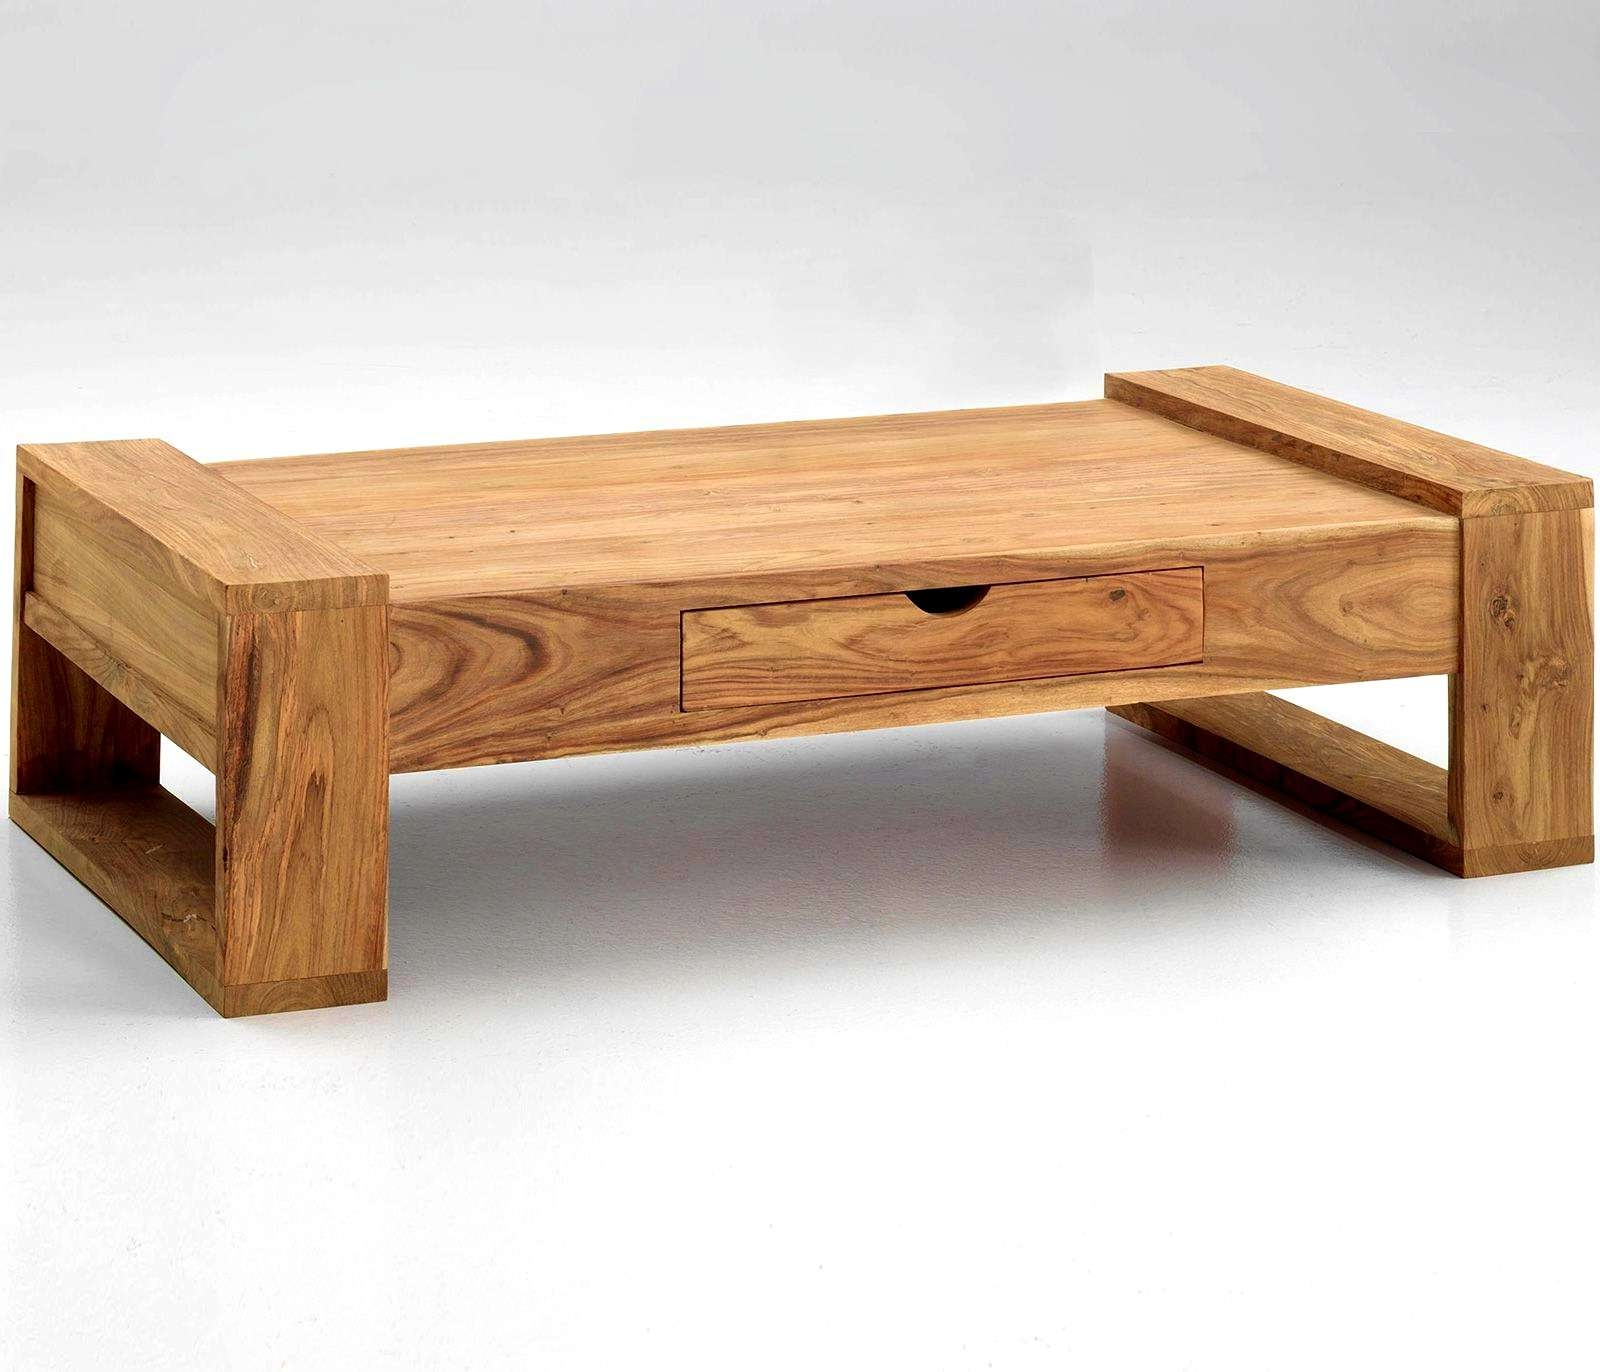 Most Recent Short Coffee Tables Inside Why Short Coffee Table Is The Best Option – Furniture Depot (View 15 of 20)